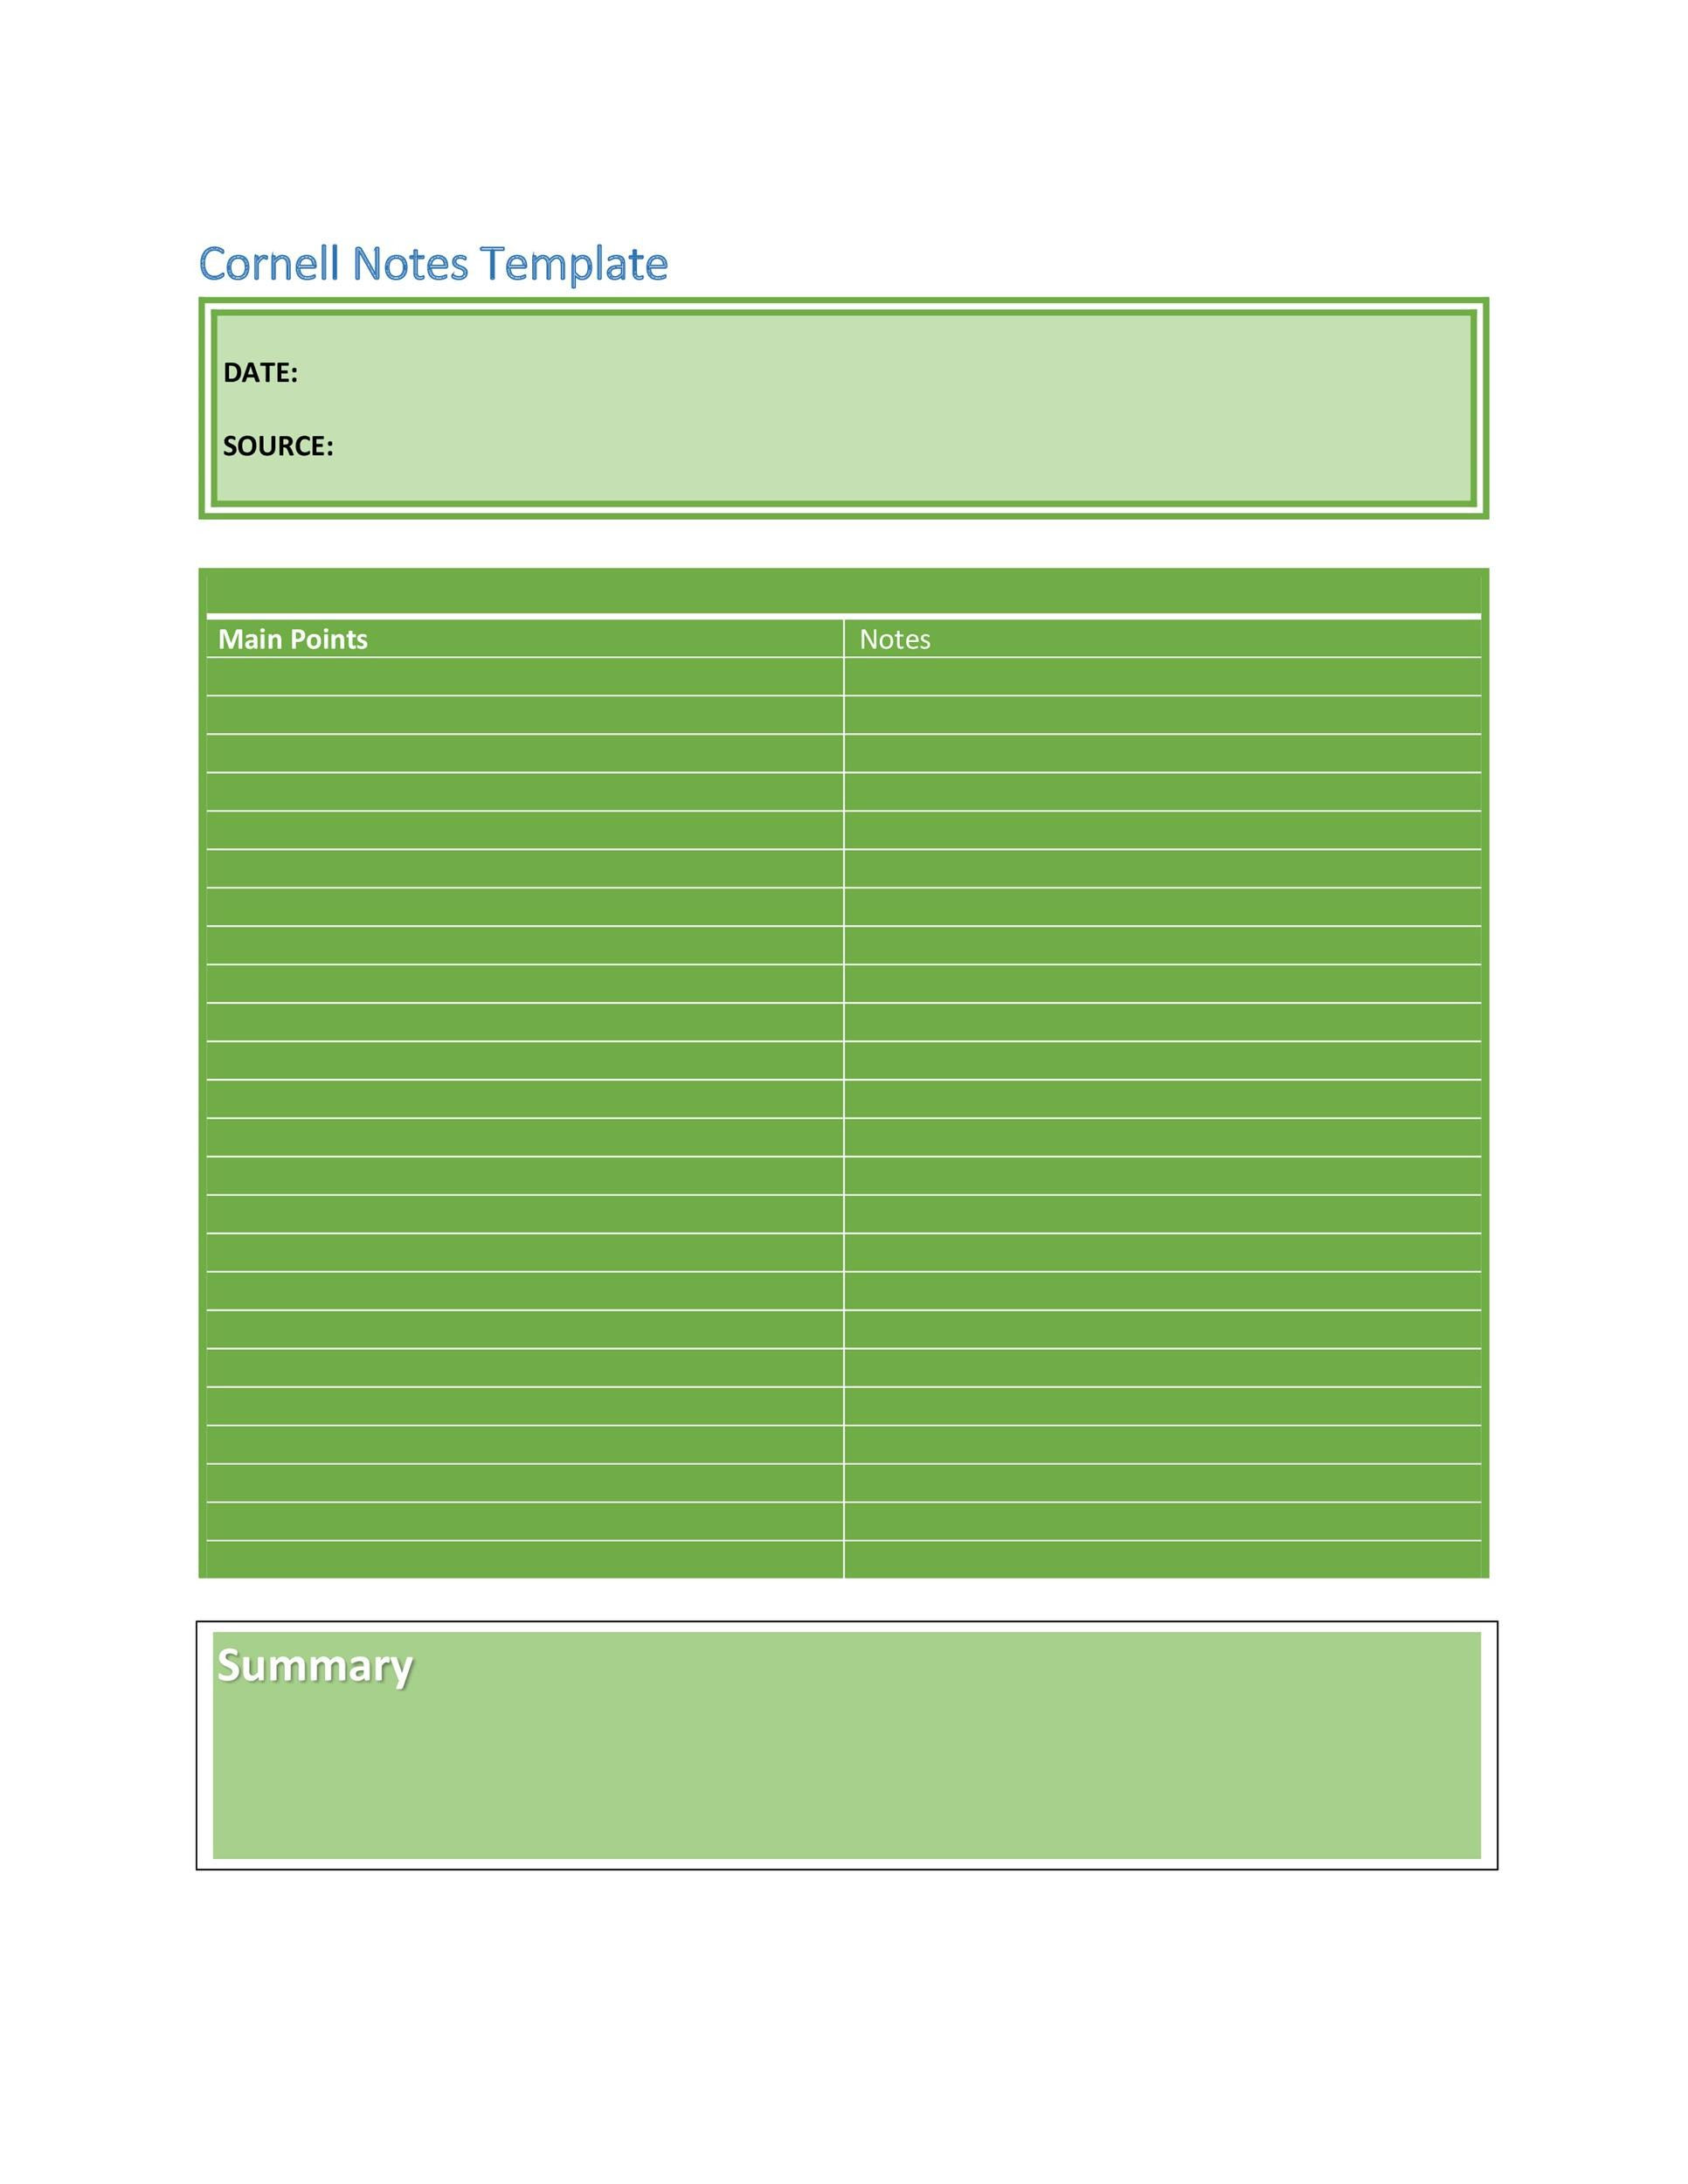 Cornell Notes Template 12